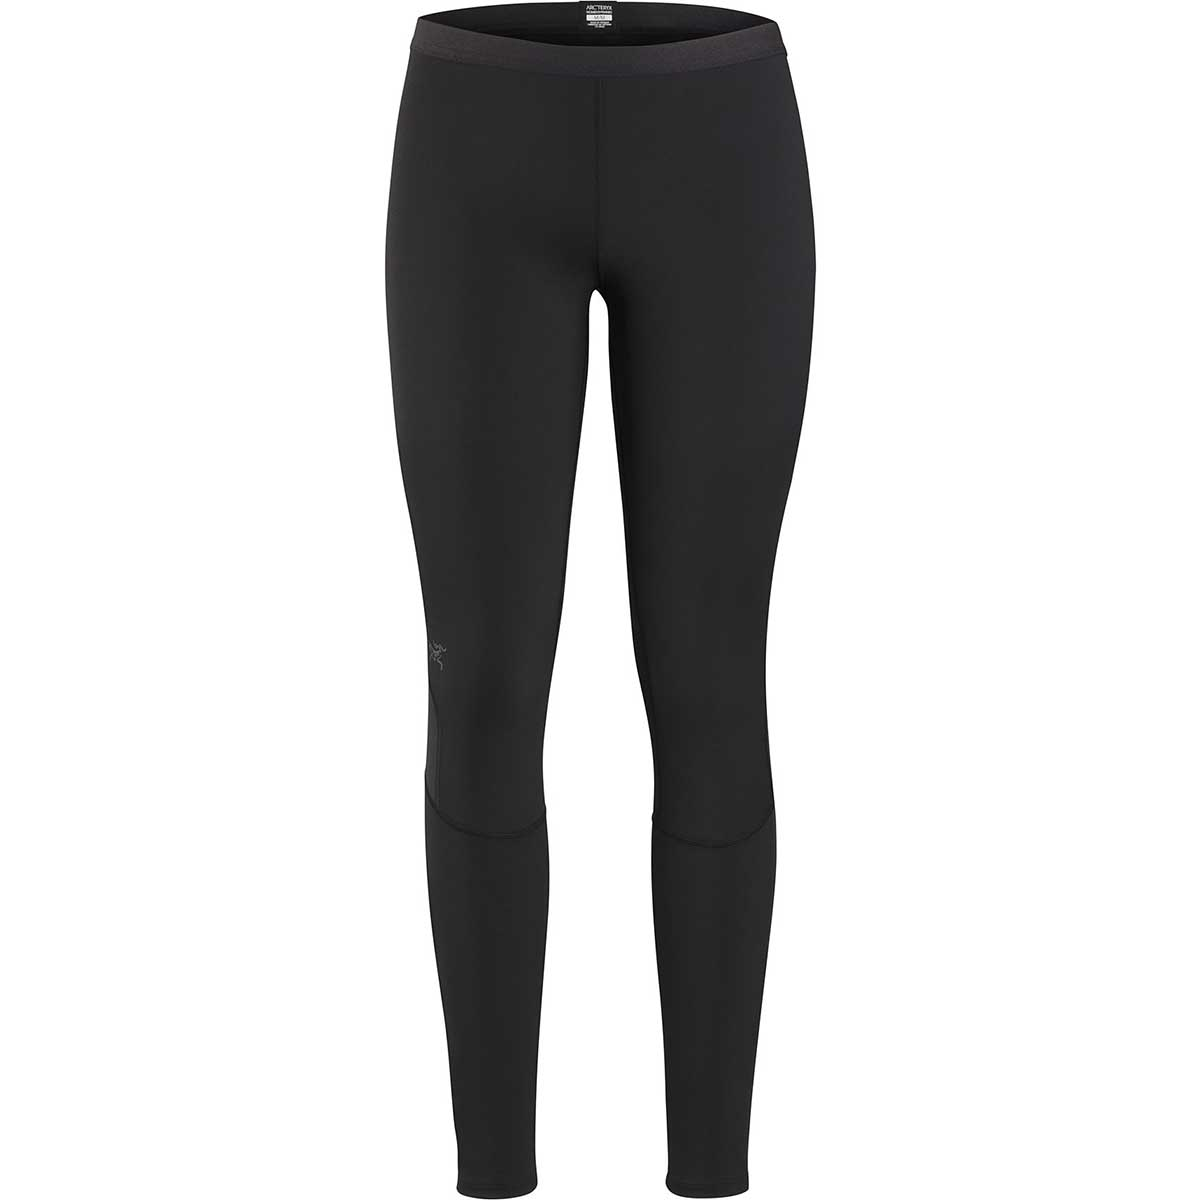 Arc'teryx Women's Phase AR Bottoms in Black